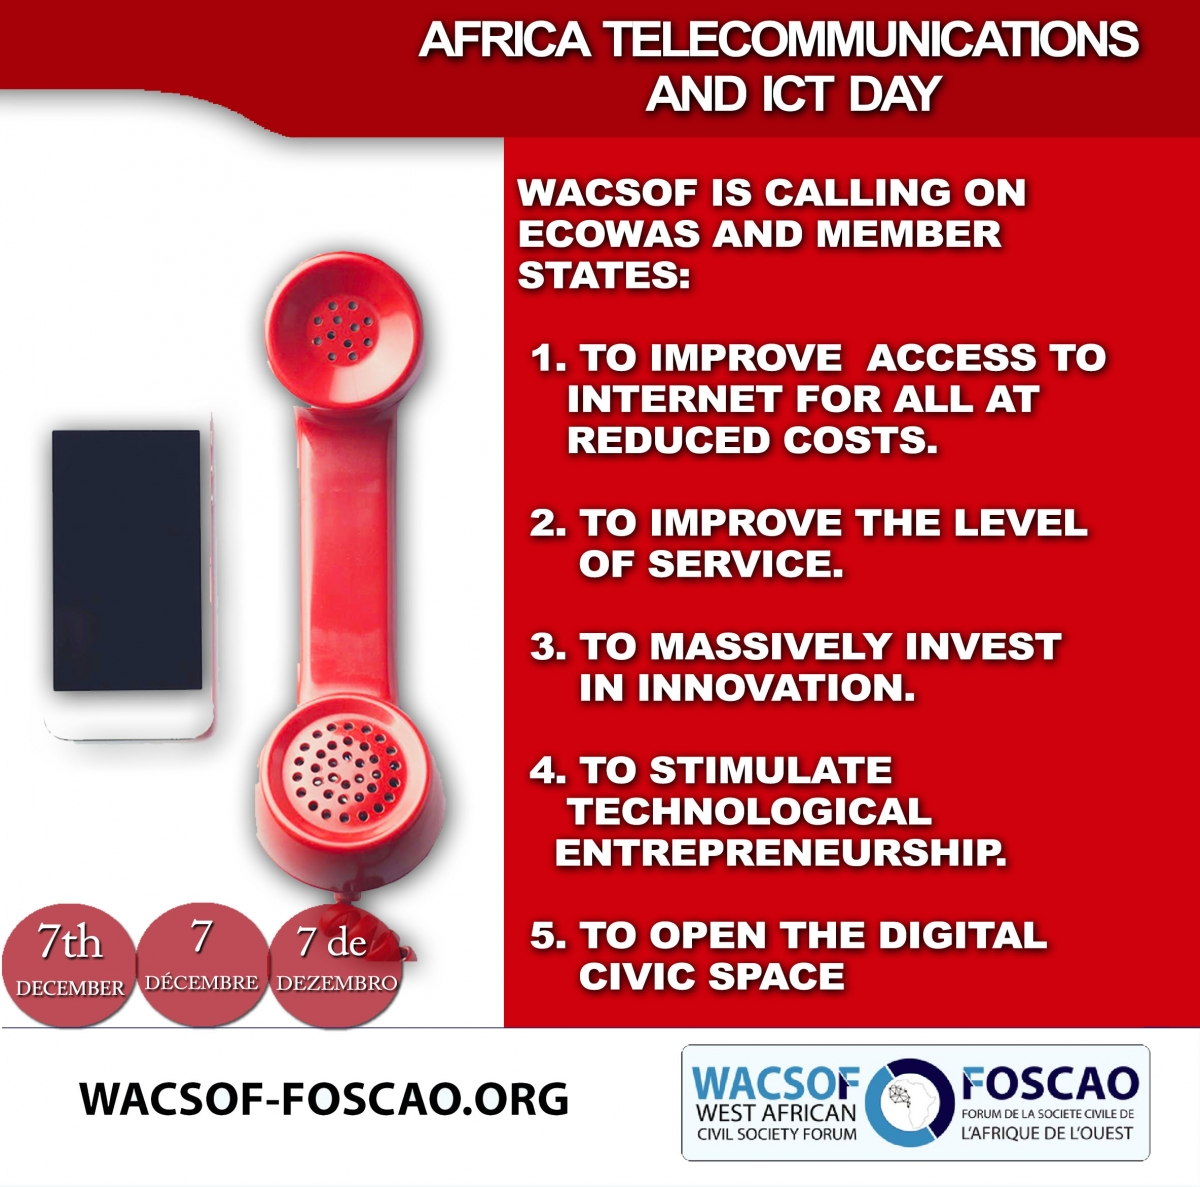 OUR RECOMMENDATIONS FOR THE AFRICAN TELECOMMUNICATIONS ICT AND DAY